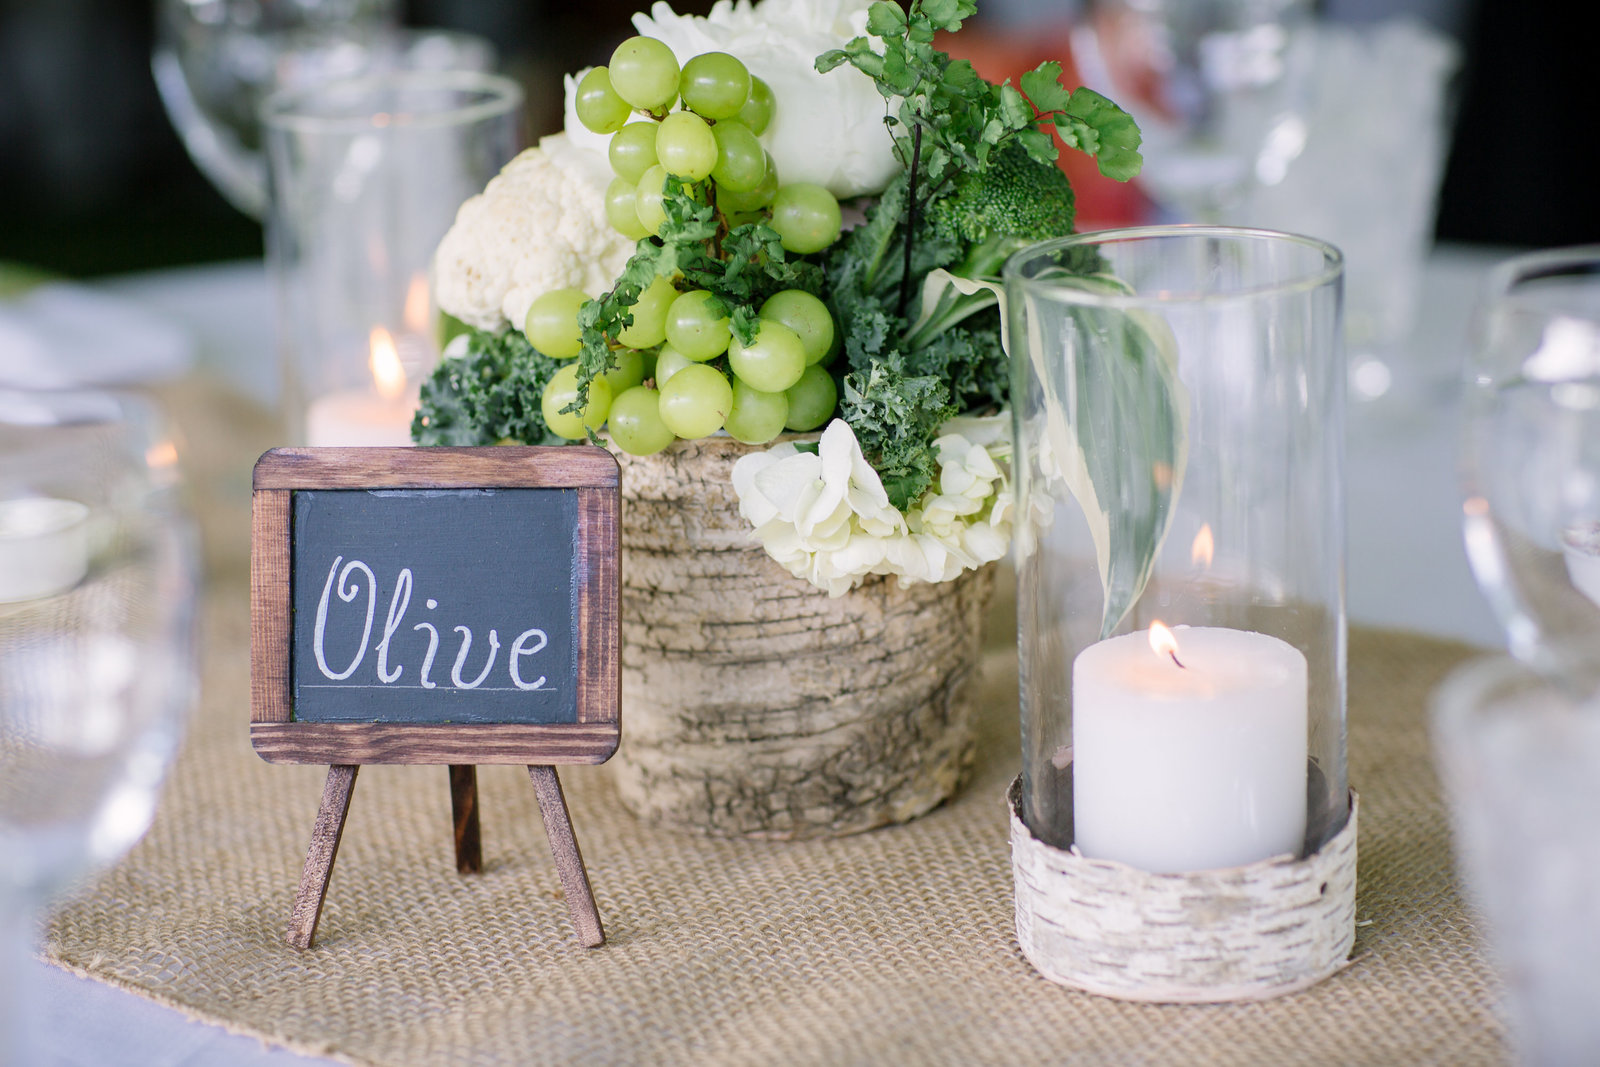 Unique centerpiece with herbs and veggies and mini chalkboard